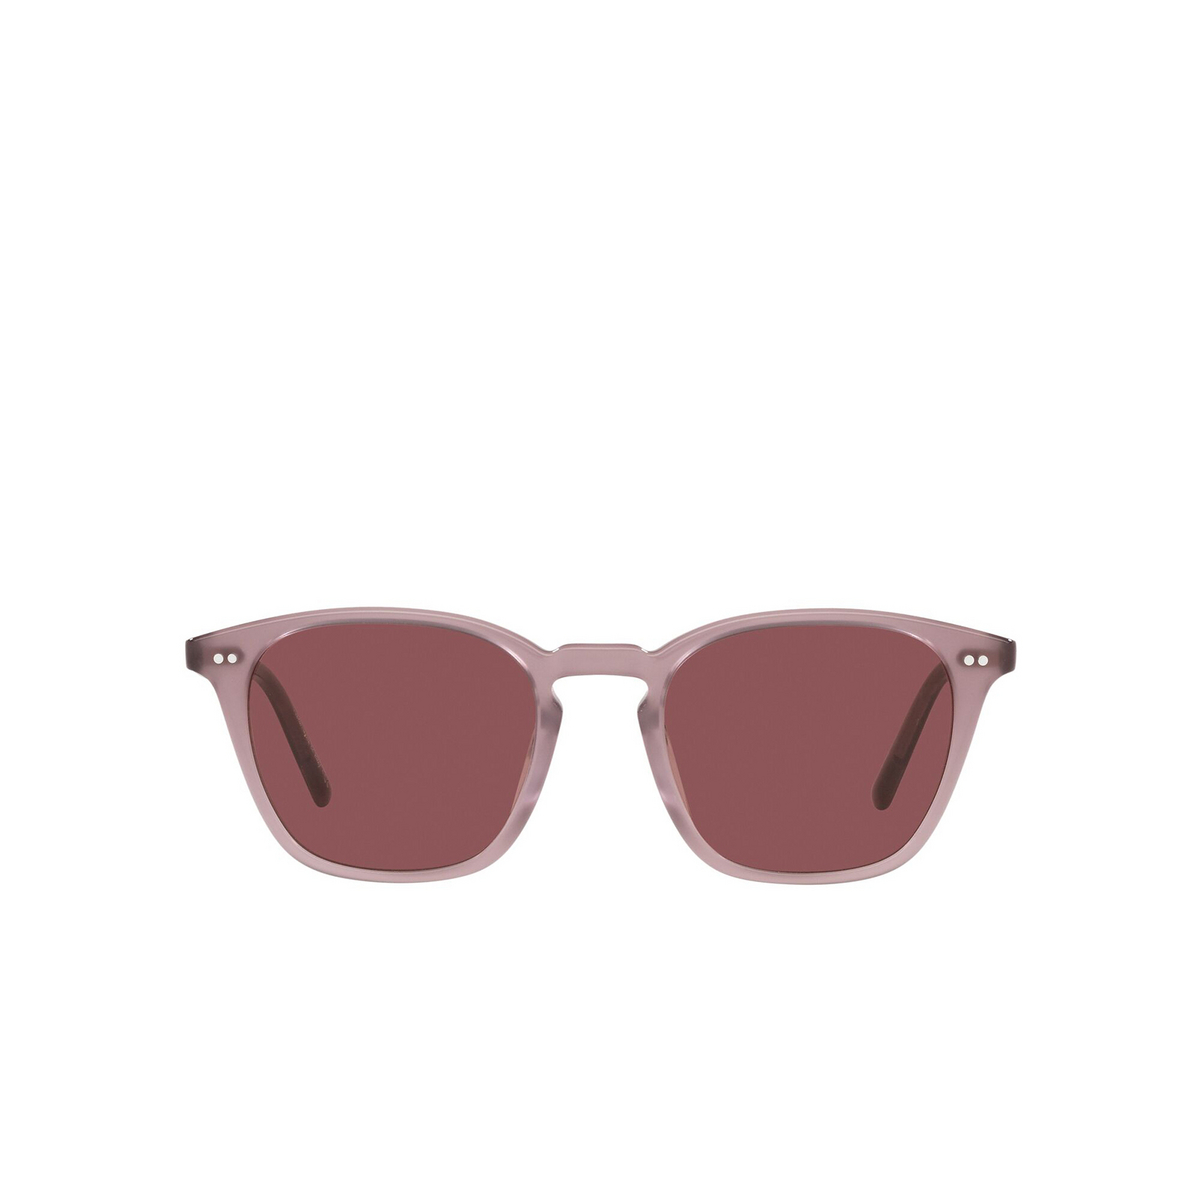 Oliver Peoples® Square Sunglasses: Frère Ny OV5462SU color Mauve 171475 - front view.